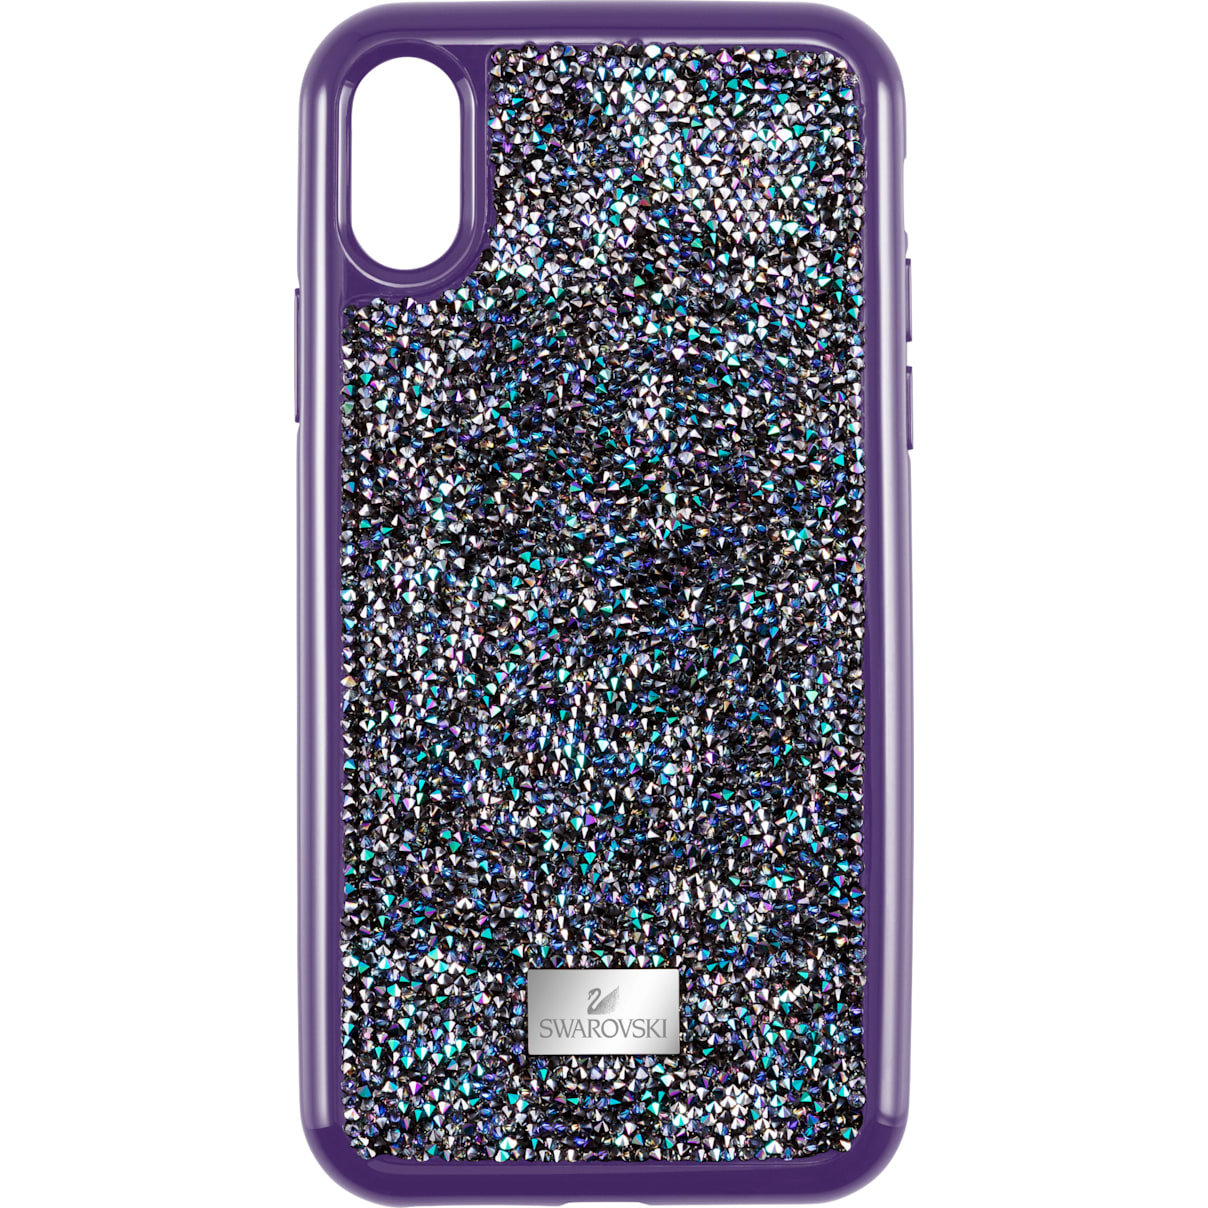 Swarovski Glam Rock Smartphone case with Bumper, iPhone® XR, Purple